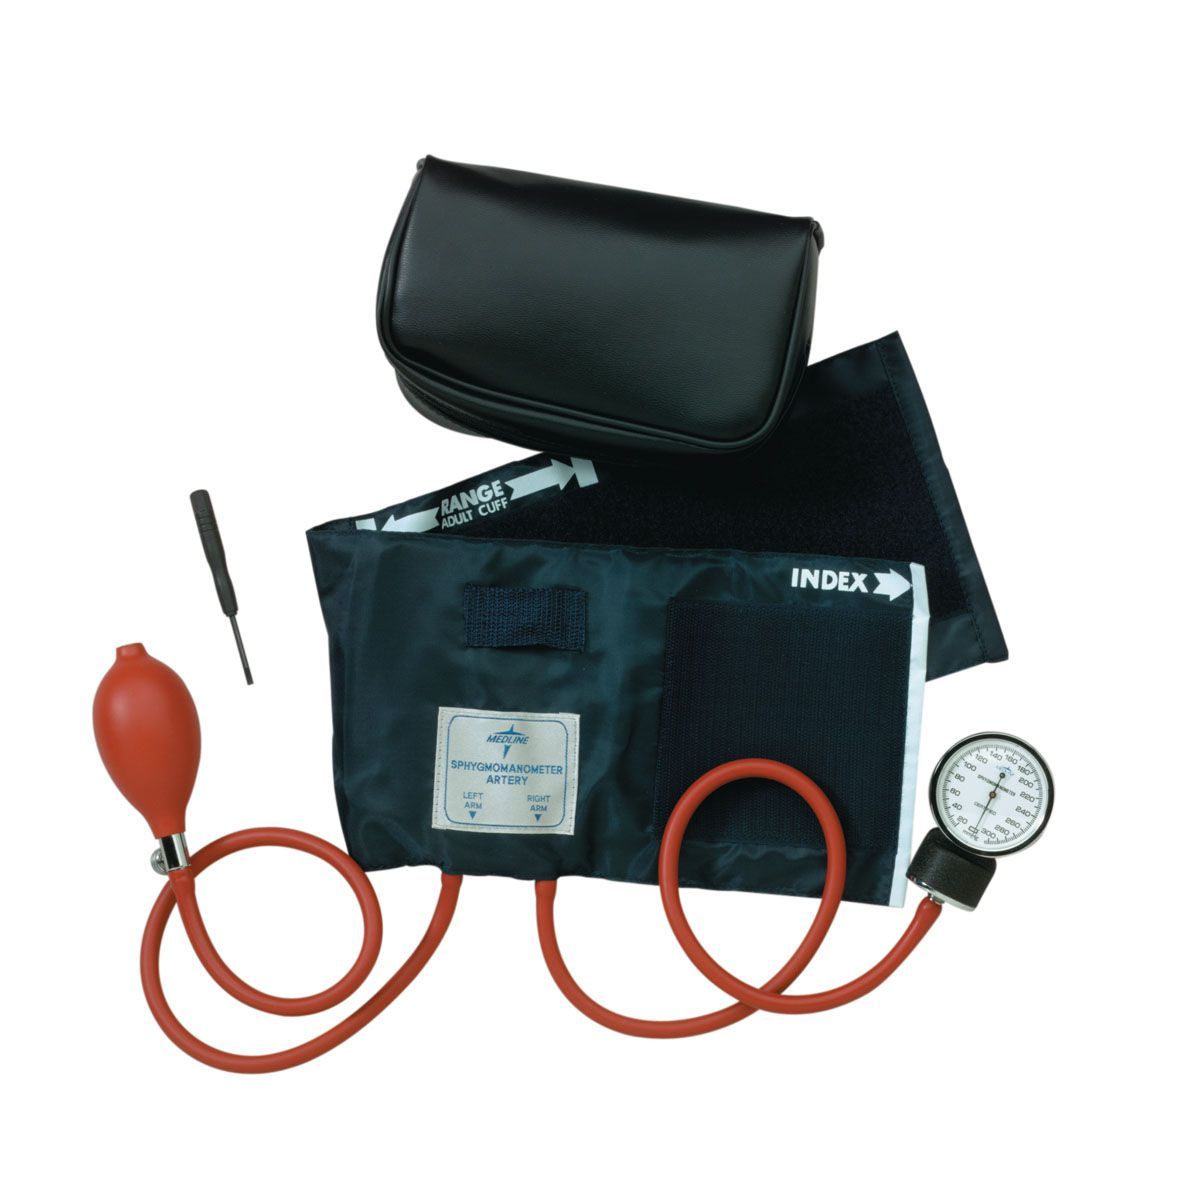 Medline Neoprene Handheld Aneroid Sphygmomanometer - Hand Held, Infant, Each - Model MDS9386LF